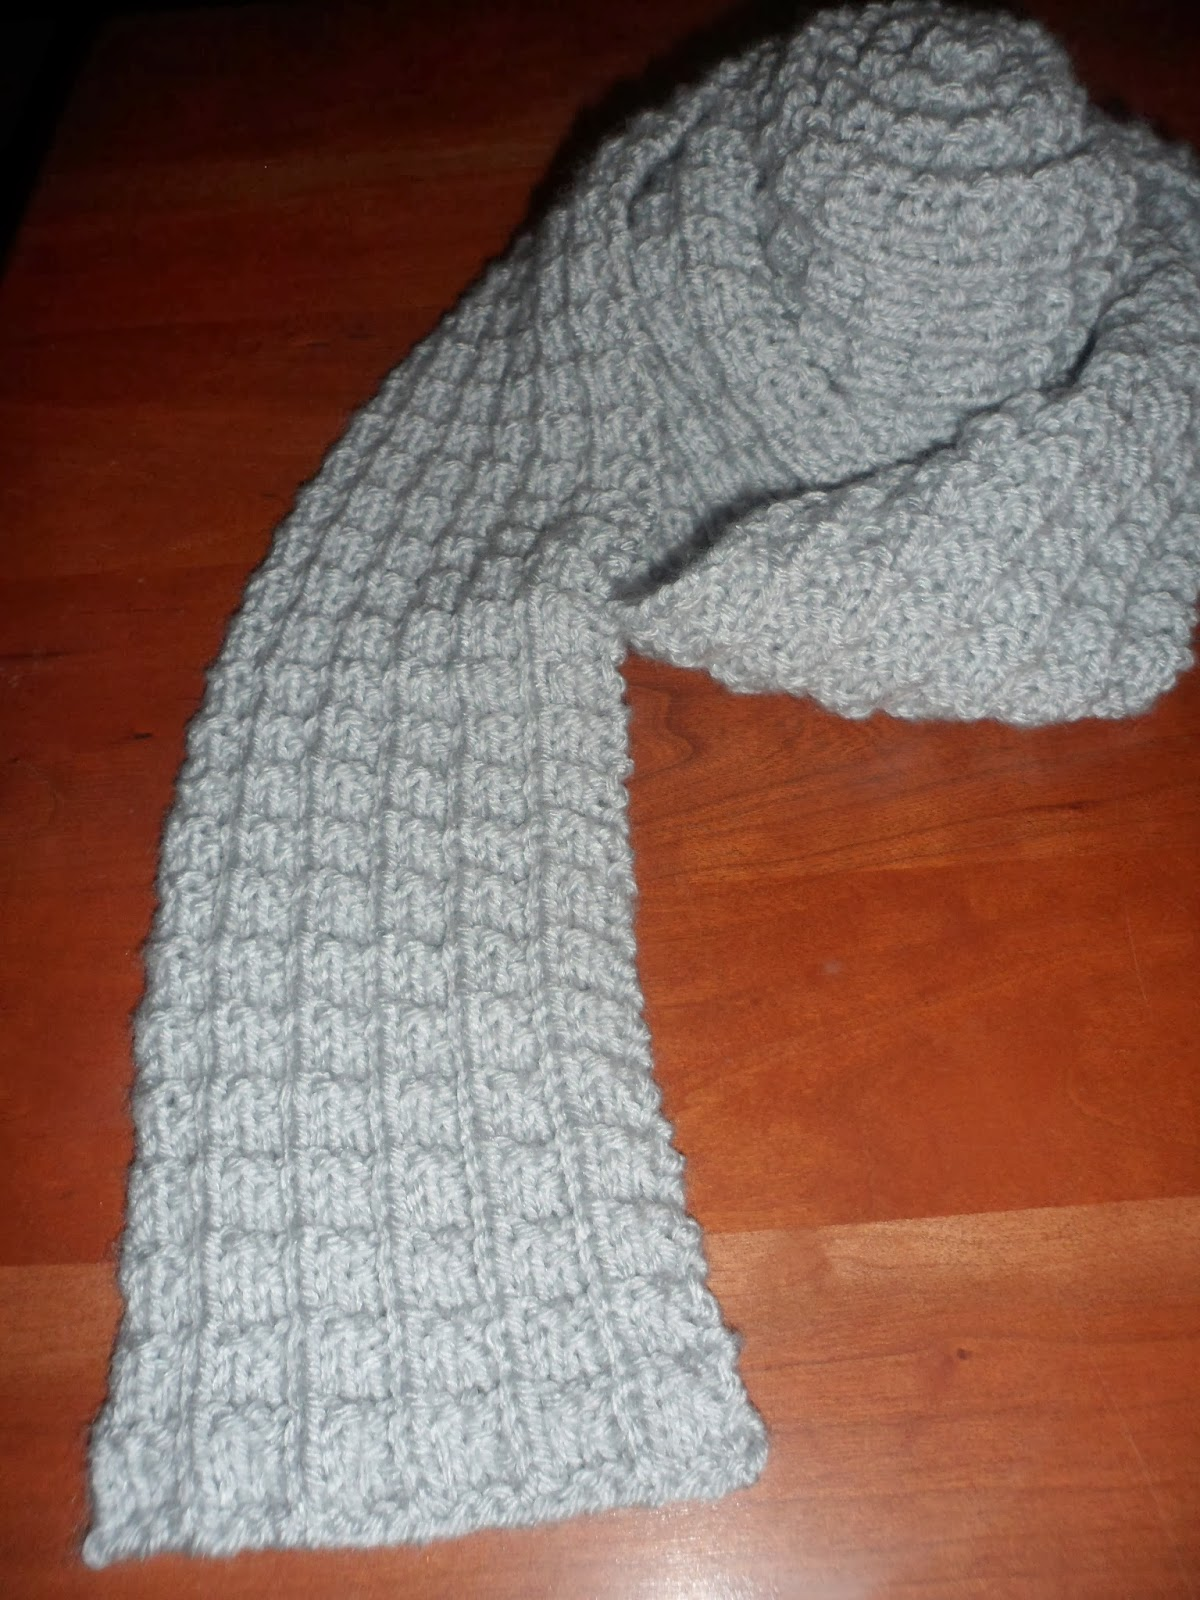 A Stitch At A Time for Amy B Stitched: RIBBED KNIT SCARF PATTERN